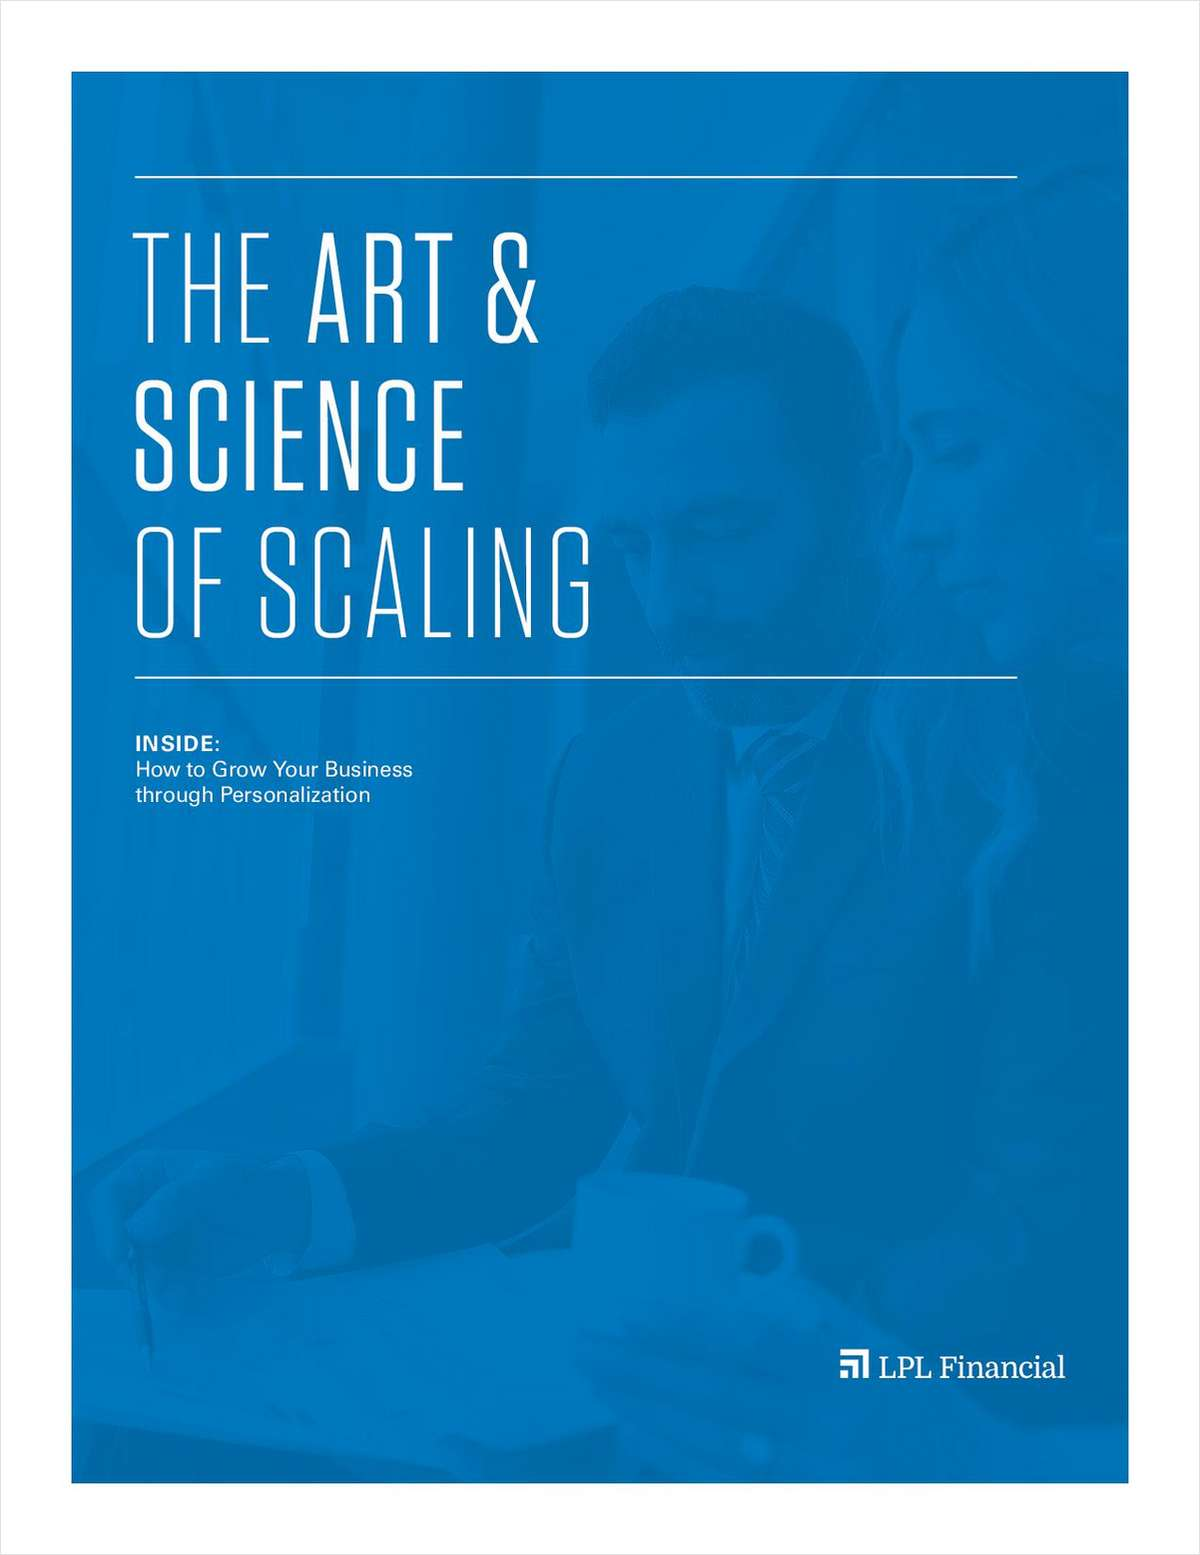 The Art & Science of Scaling Your Business